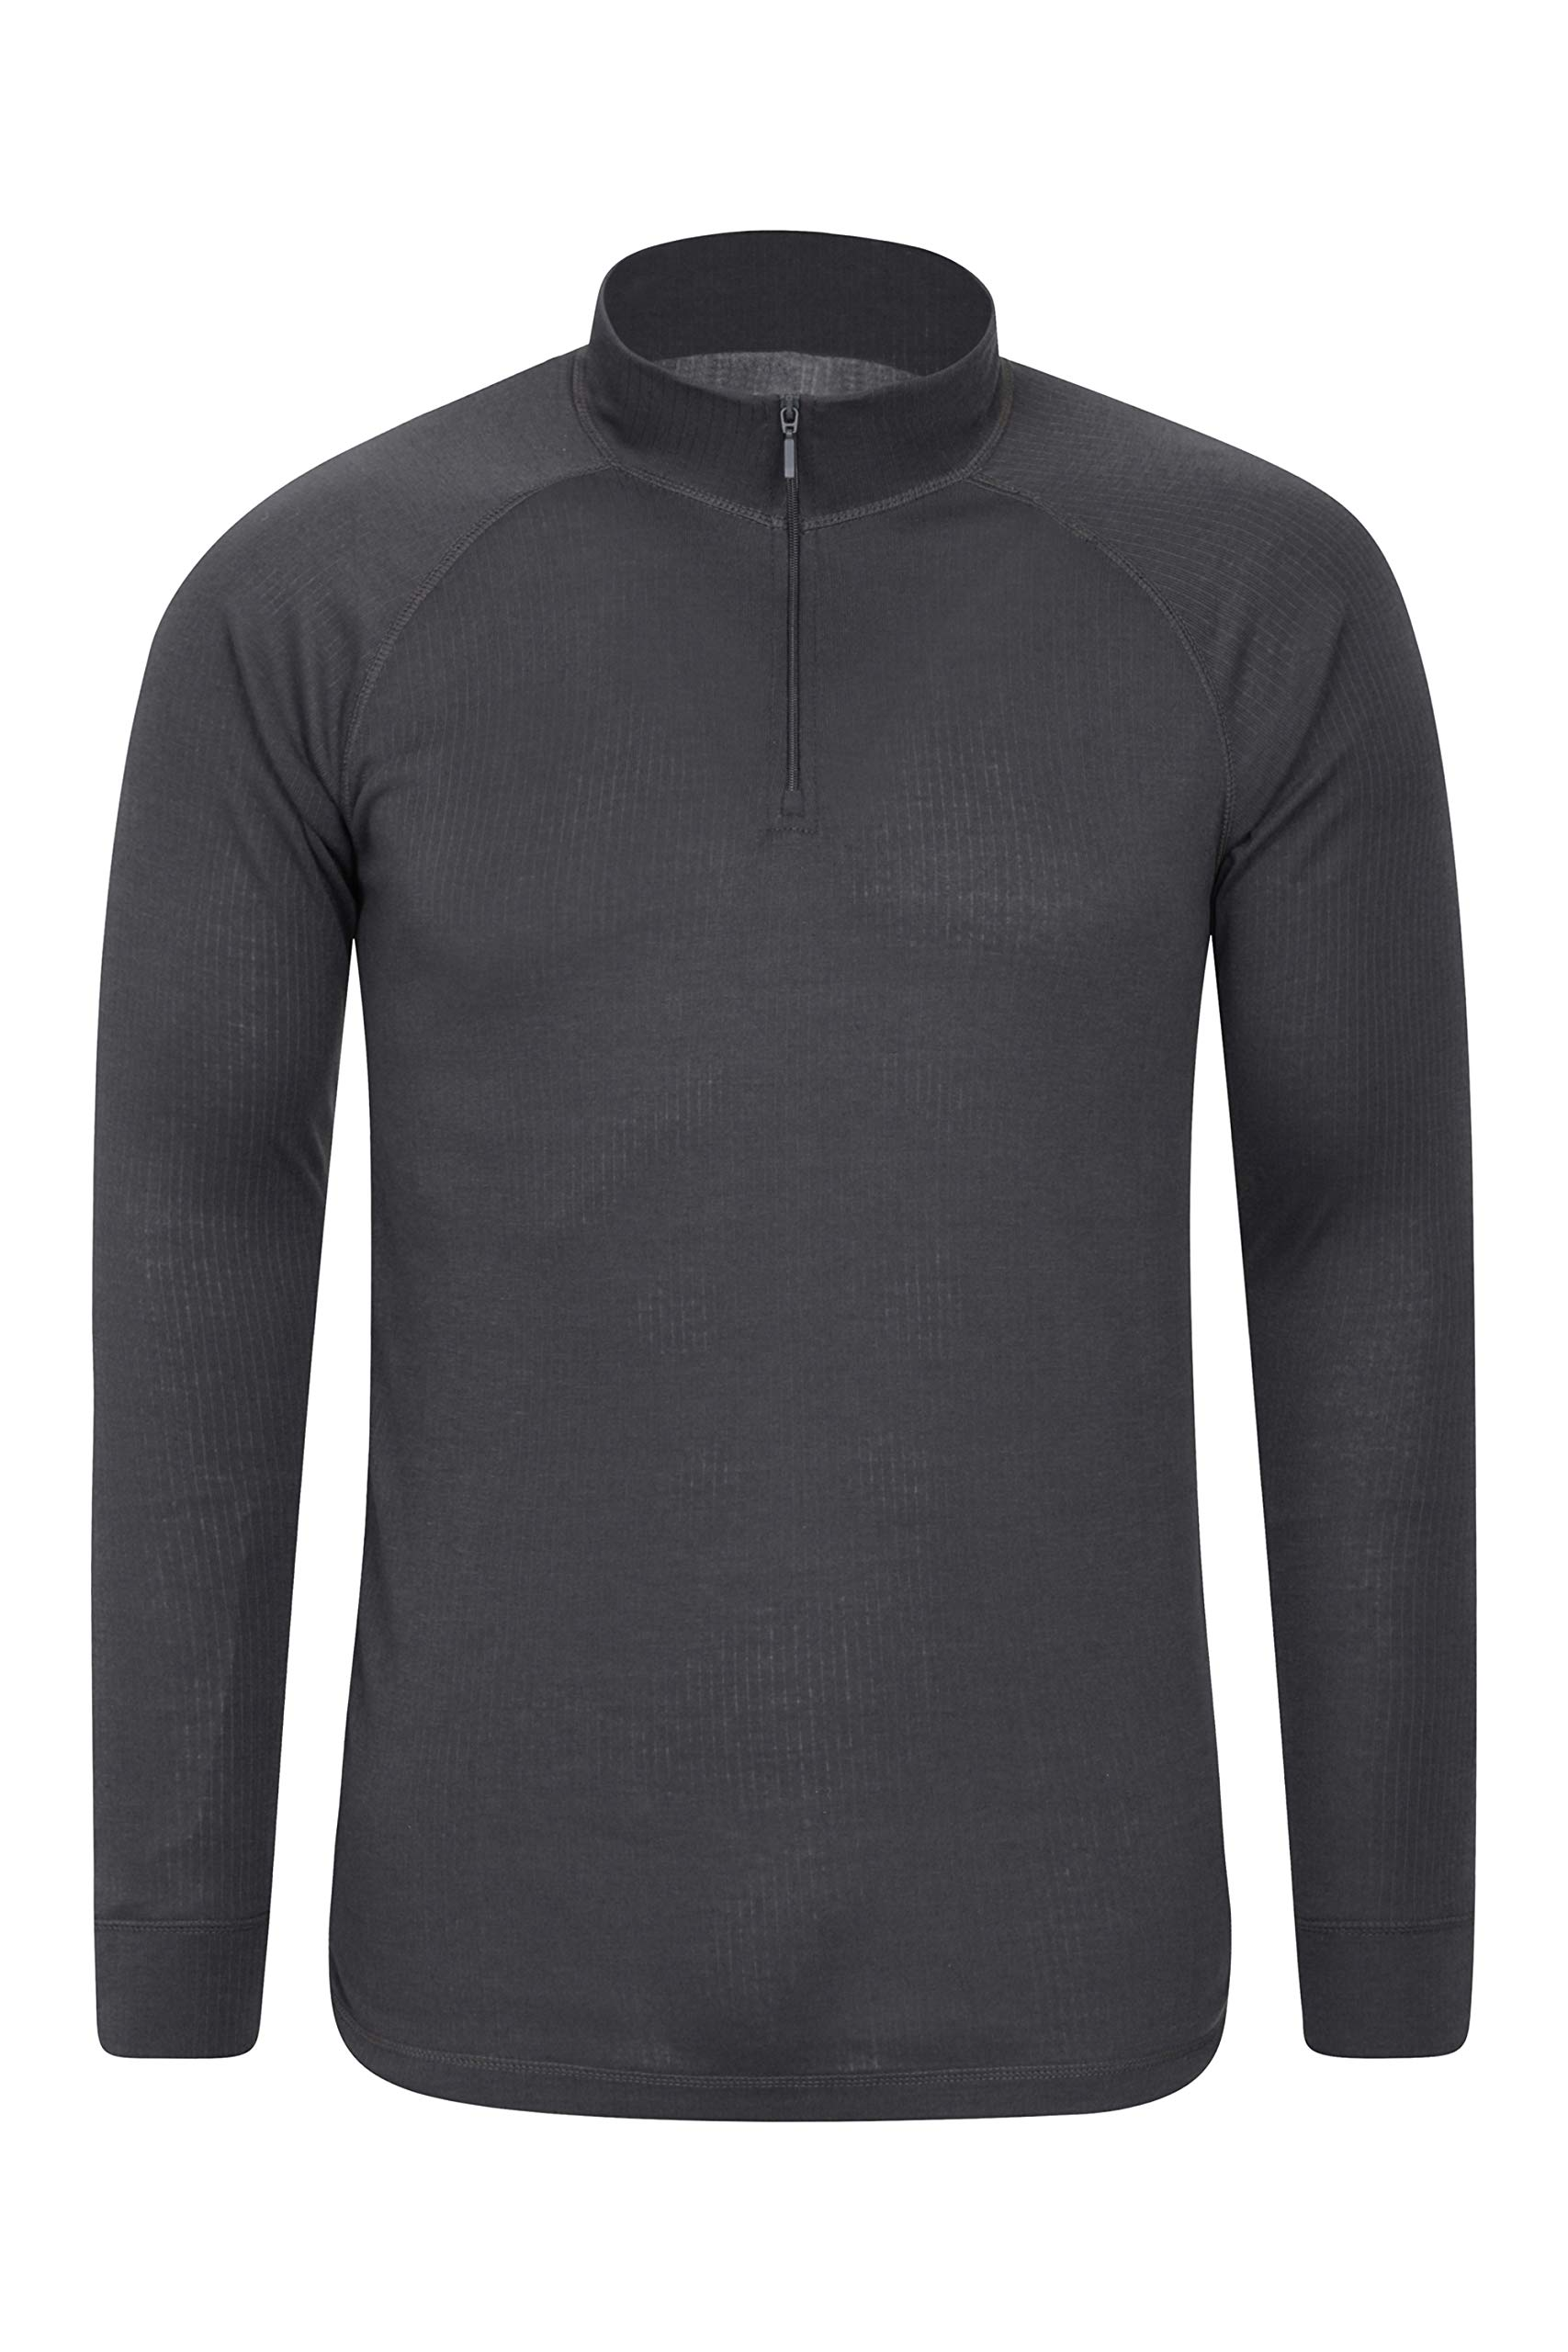 Mountain Warehouse Talus Mens Thermal Baselayer Top - Long Sleeve Sweater, Zip Neck, Quick Drying Pullover, Breathable, Lightweight - Great for Winter, Travelling 1